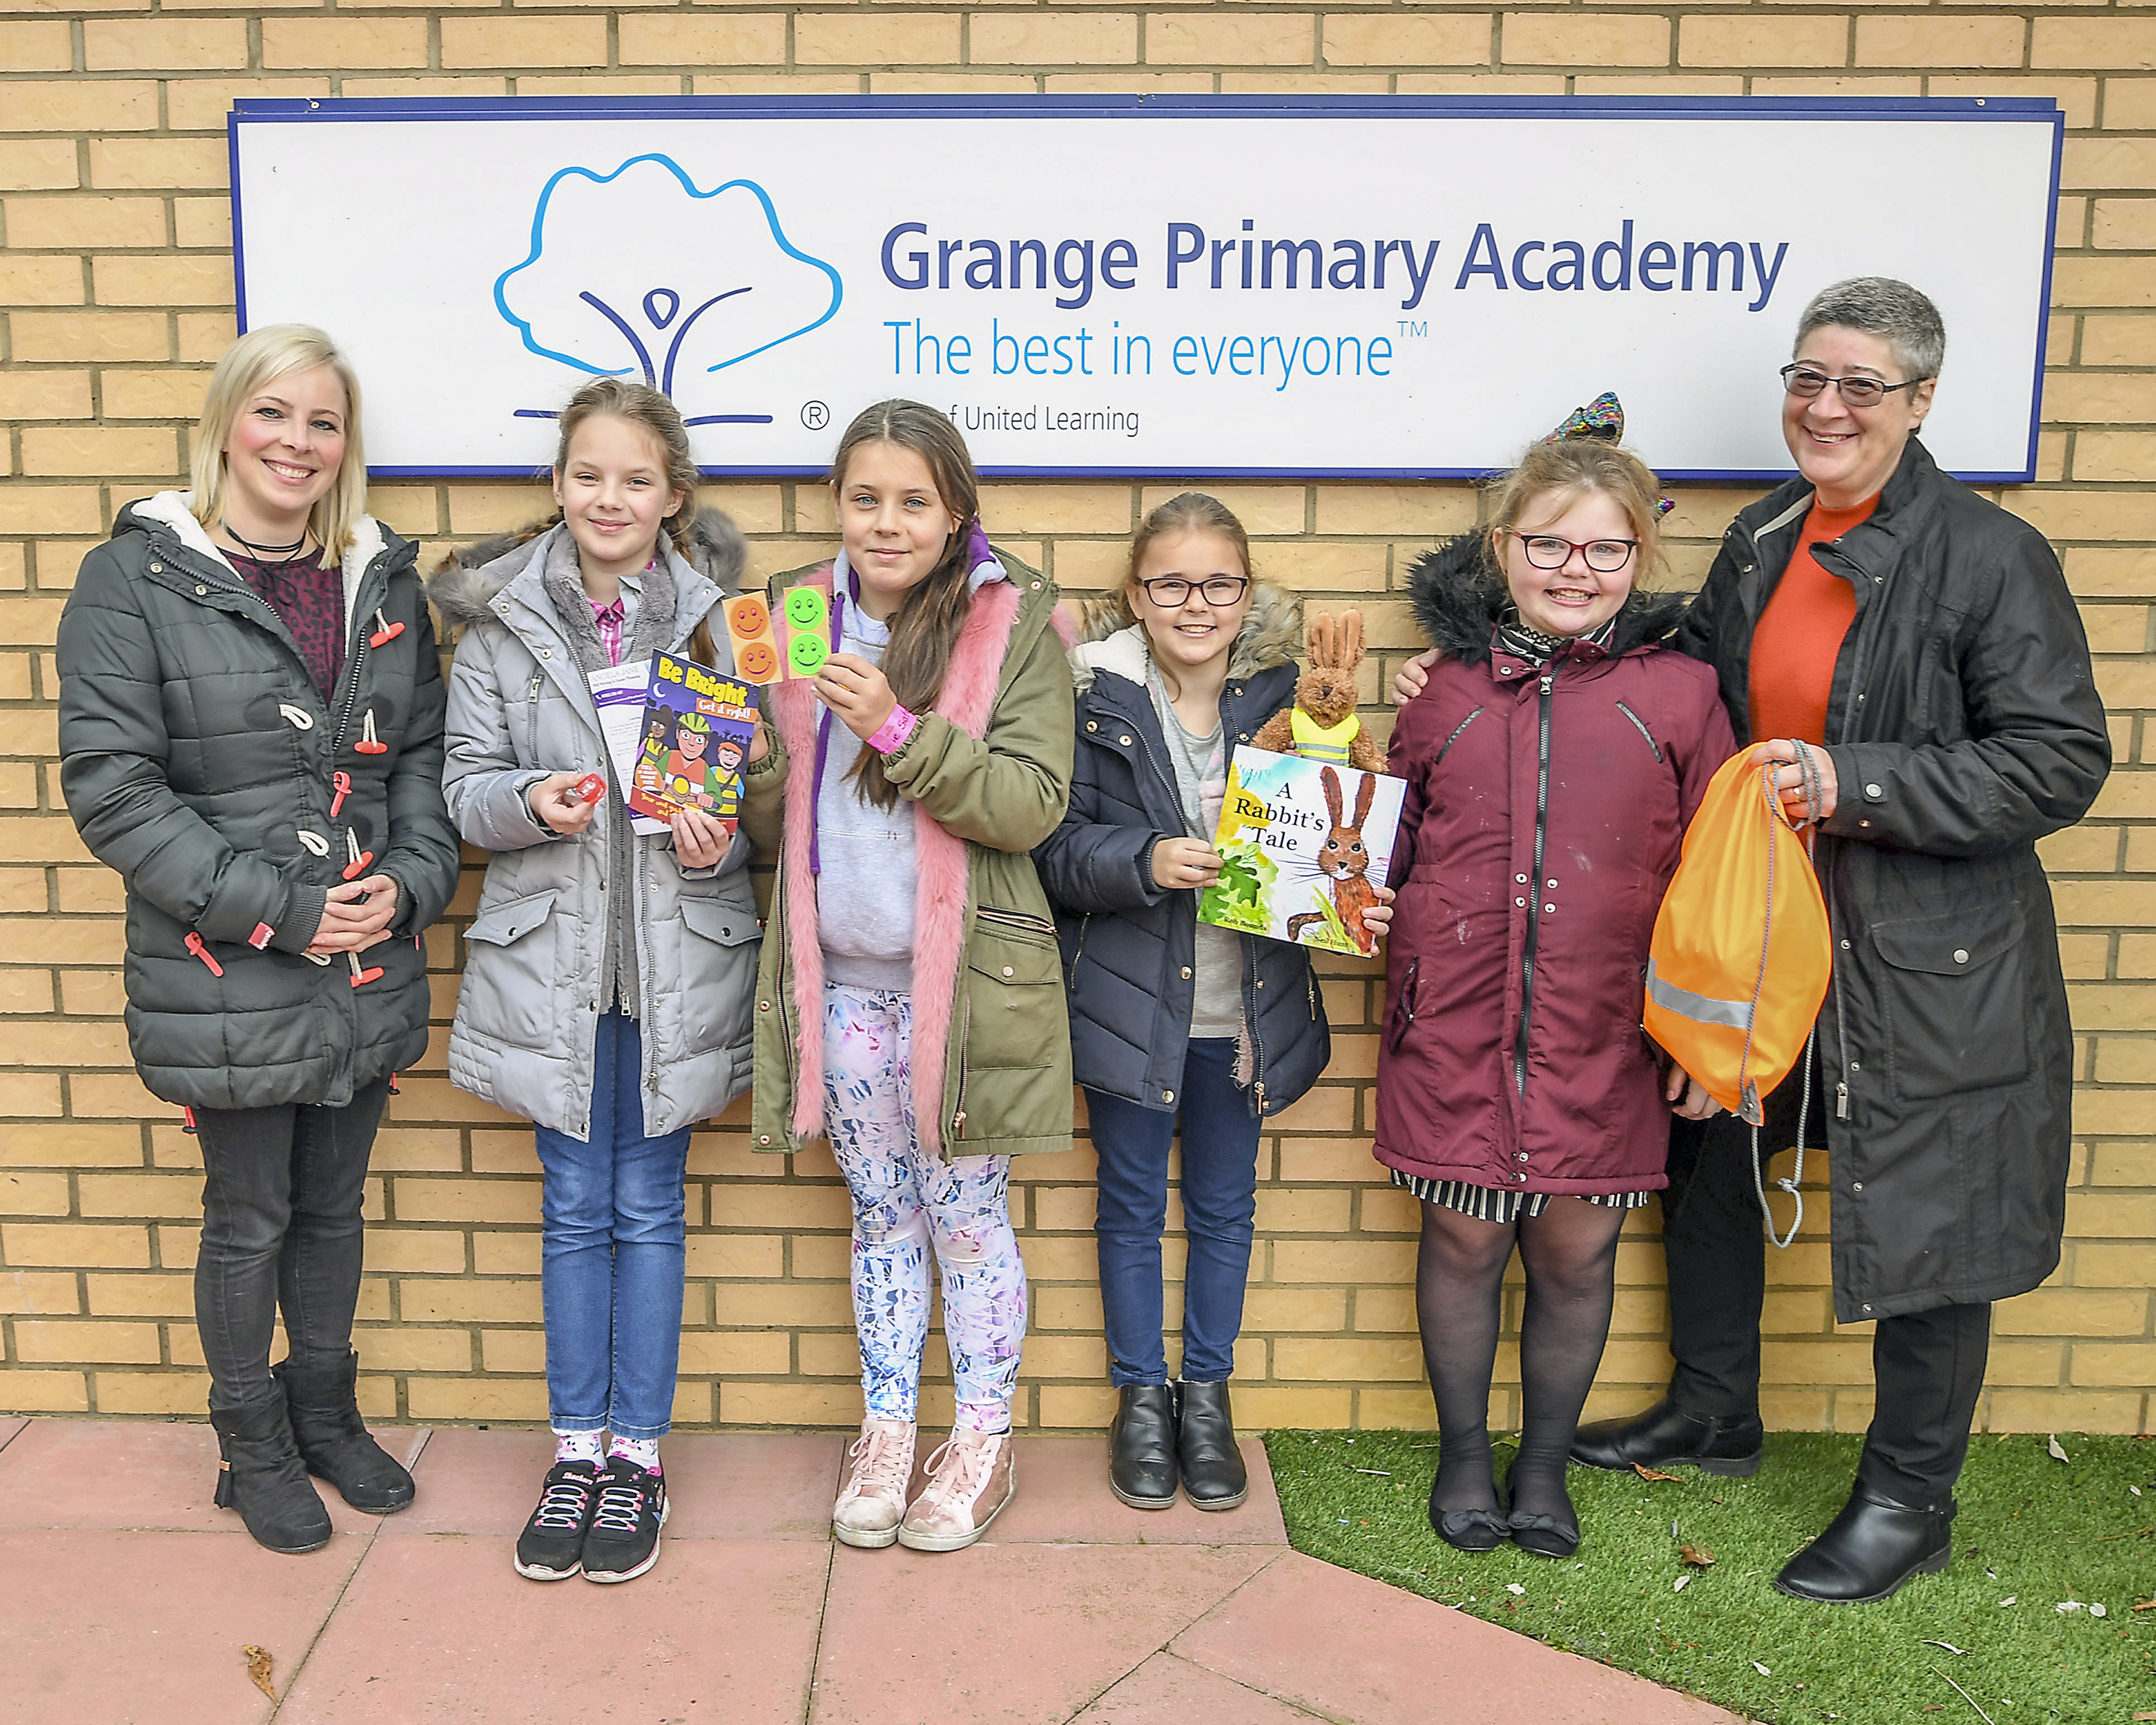 AJ Wills sponsors road safety at local school